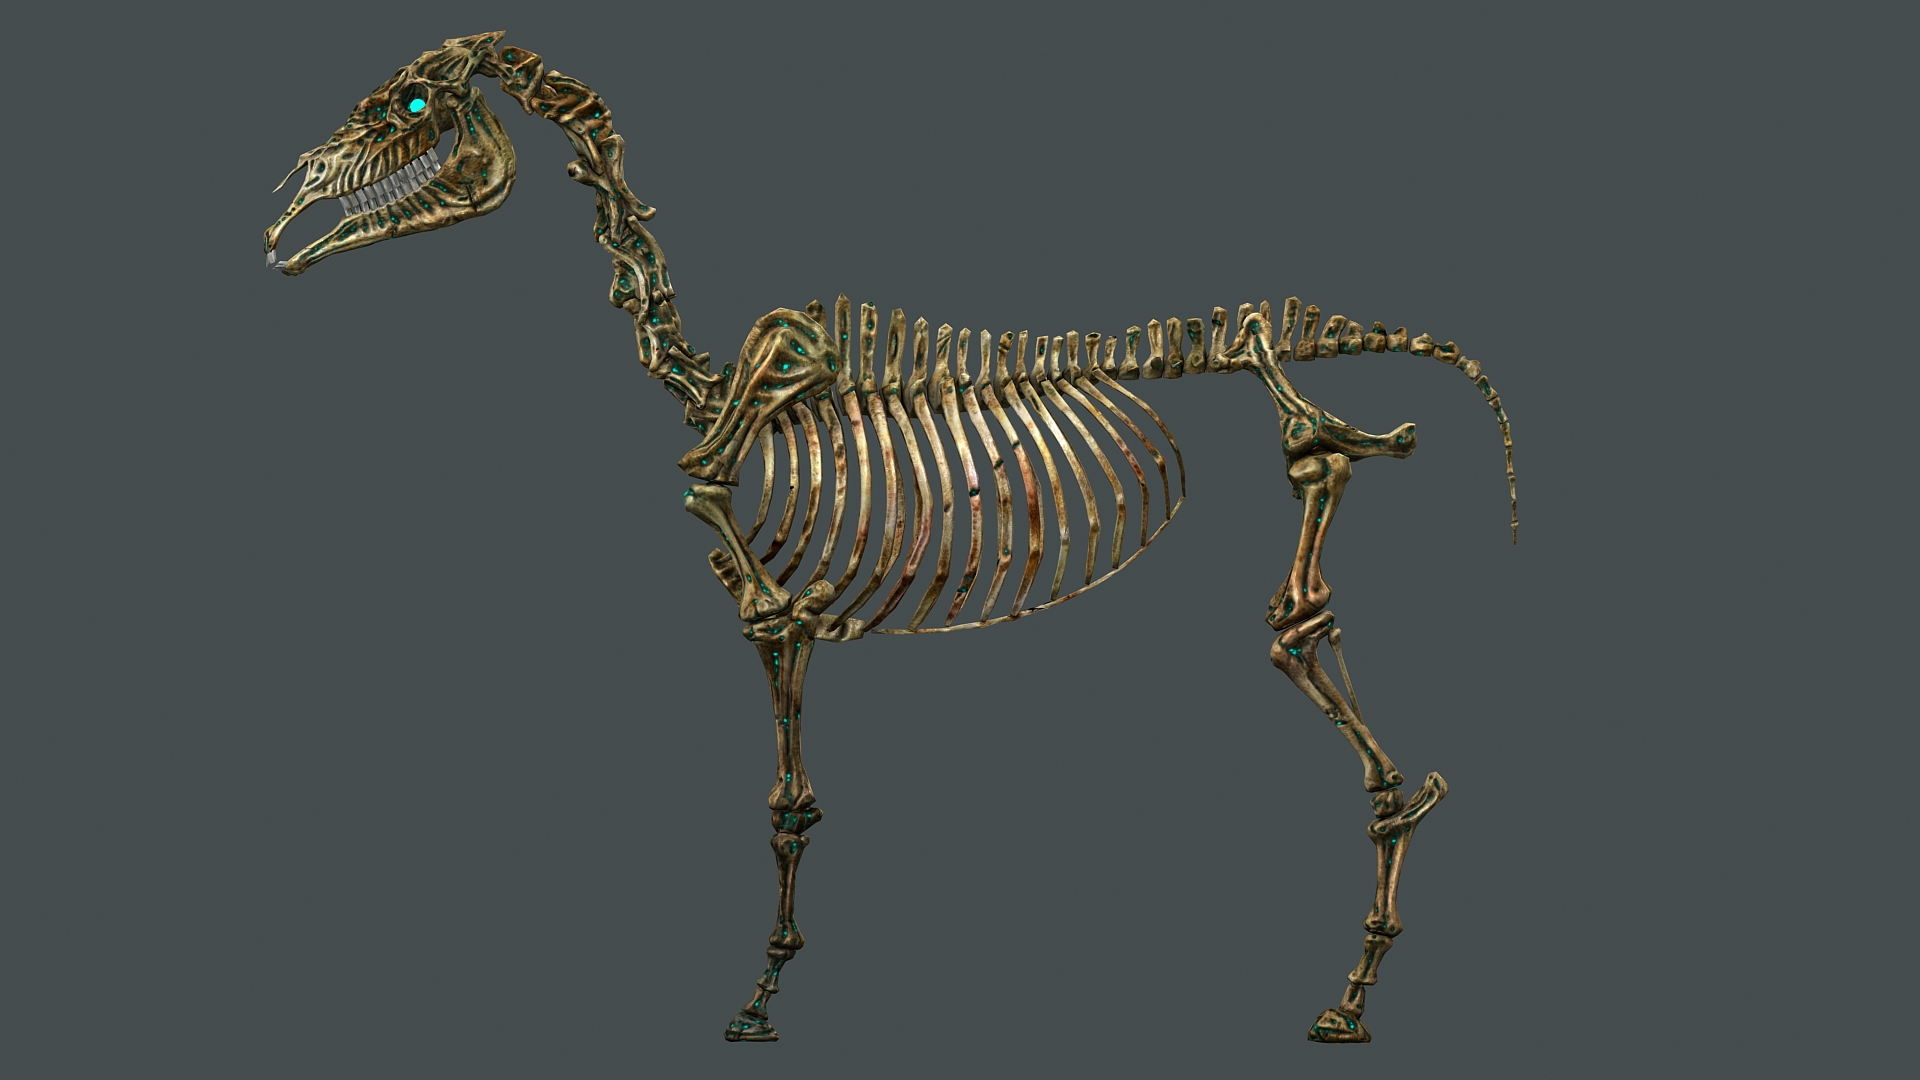 Skeleton_Hoorse_Workprogress_005.jpg